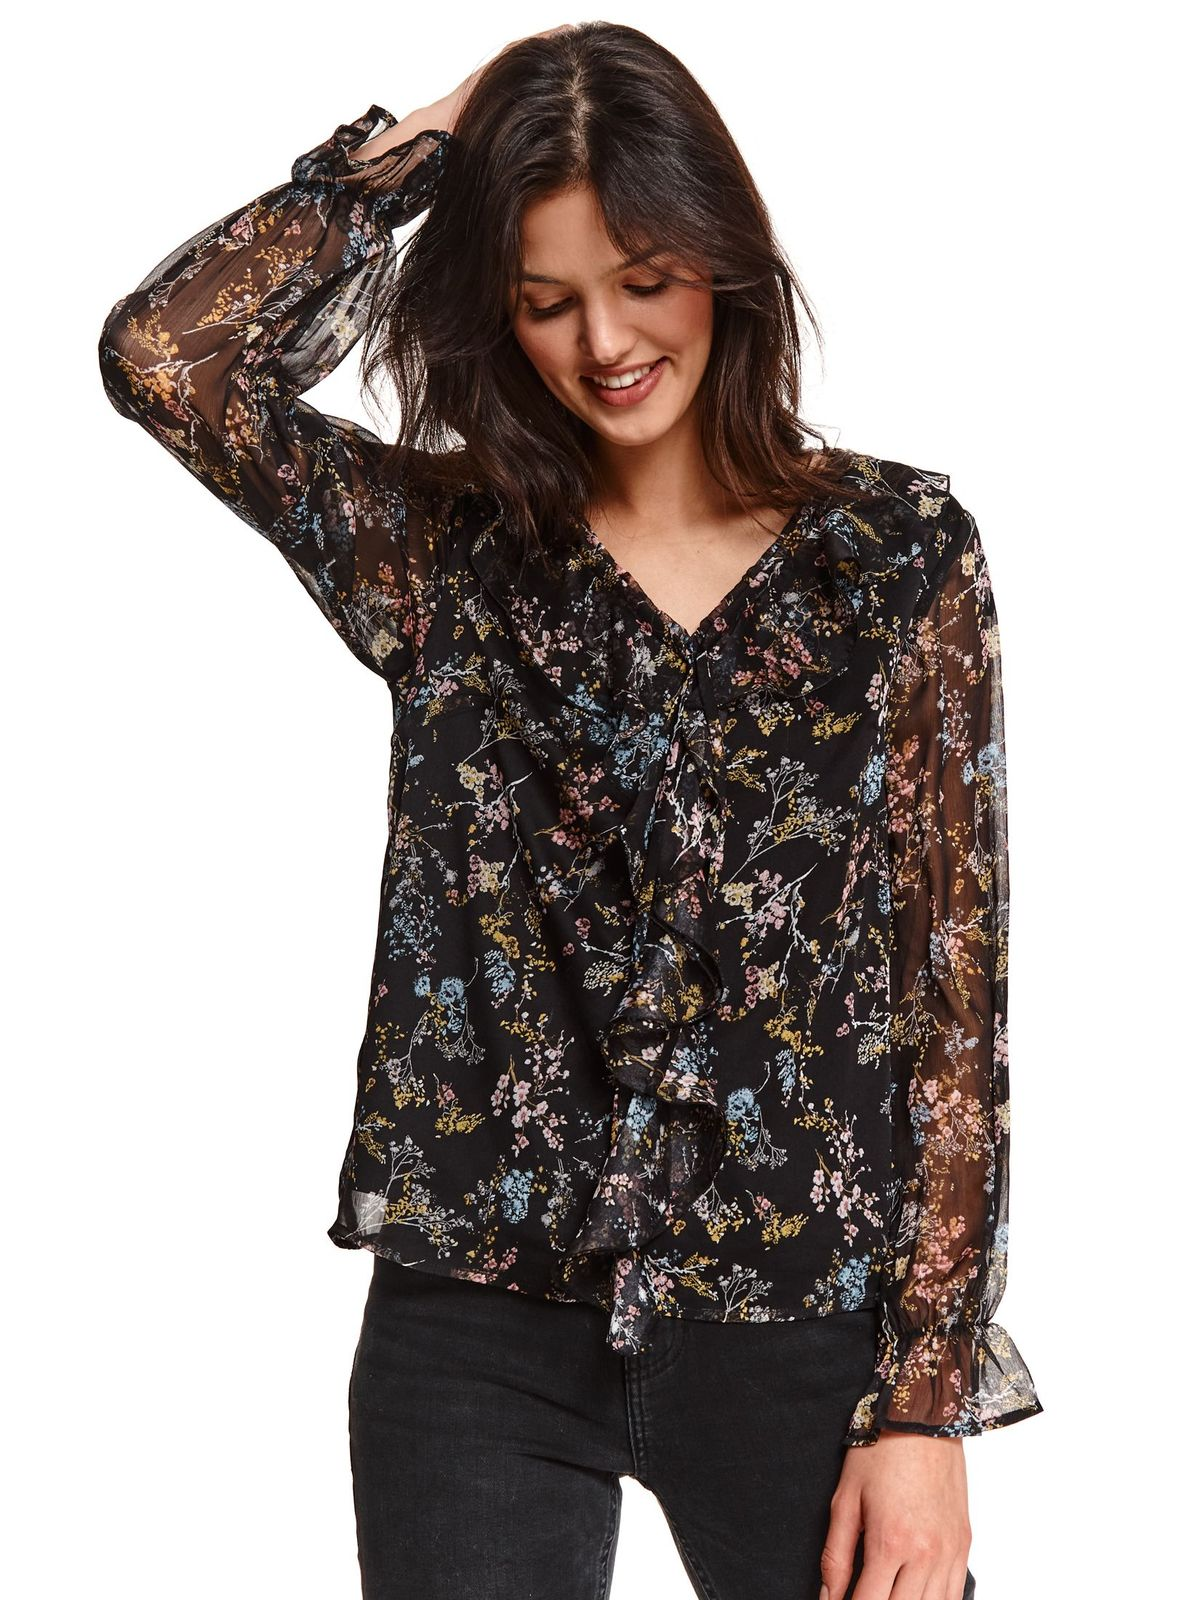 Black women`s blouse from veil fabric with floral print with ruffle details